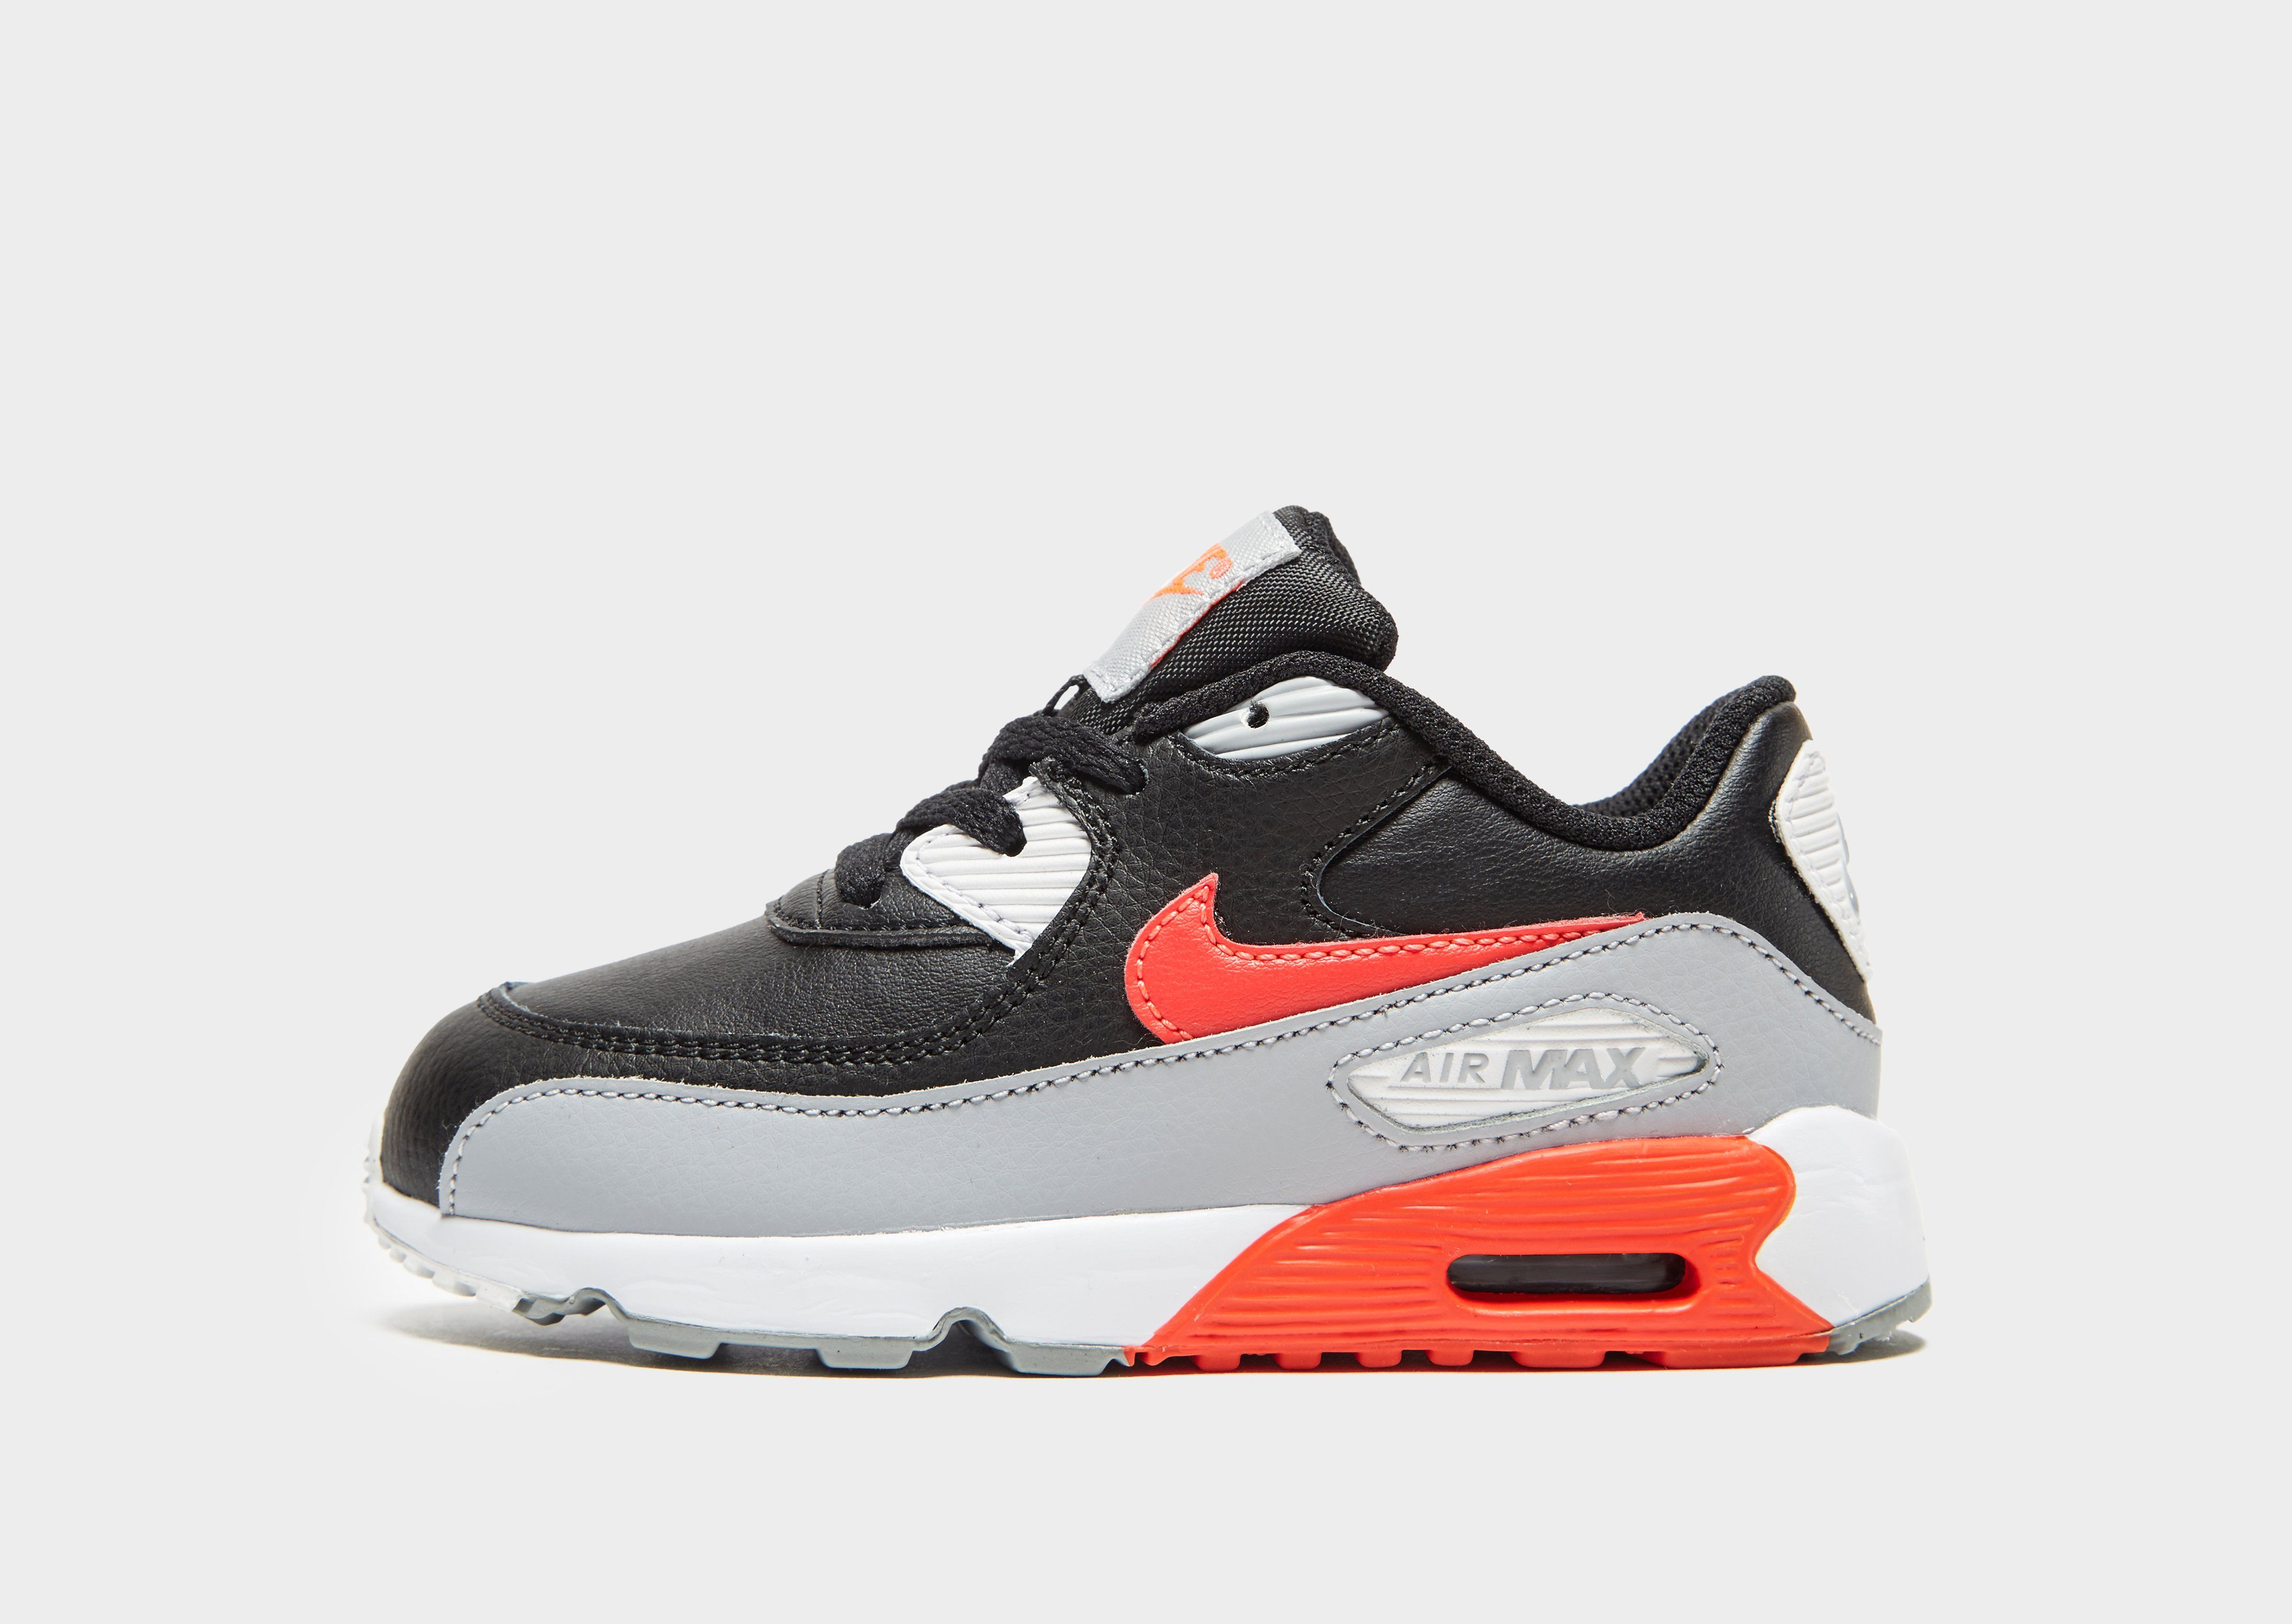 2996d5e6b021 free shipping a old school trainer gets dressed up with some flair. nike  cab0c 9656c  czech nike air max 90 infant jd sports 05ff5 cefc9